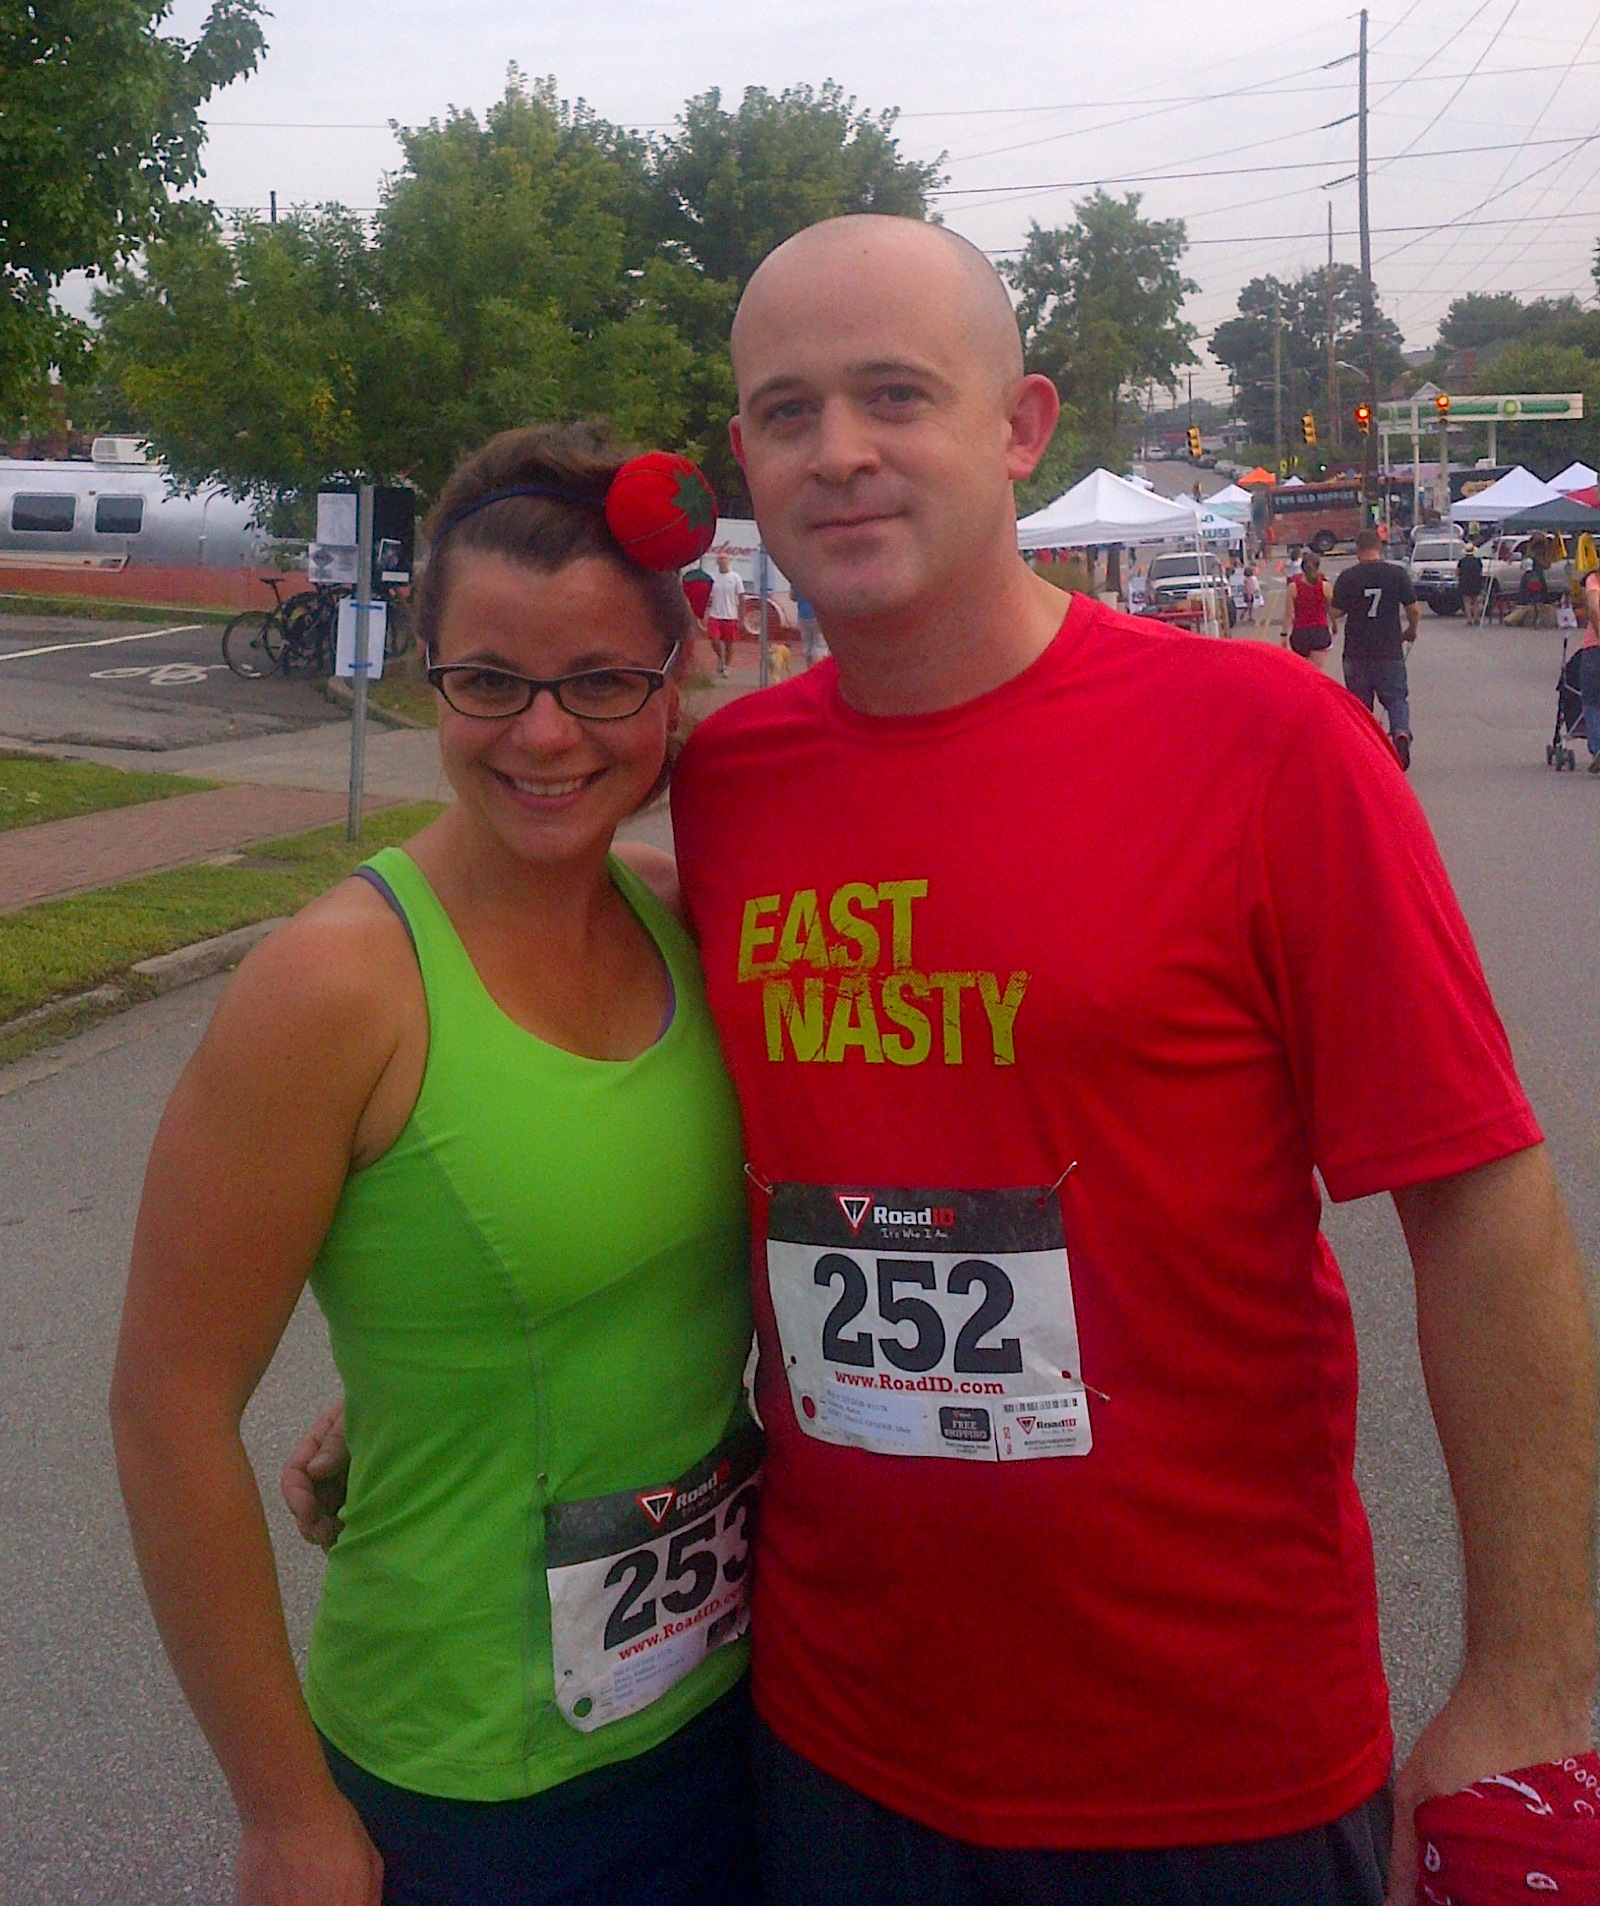 Kathleen with her husband, Aaron at the 2013 Tomato Fest 5k